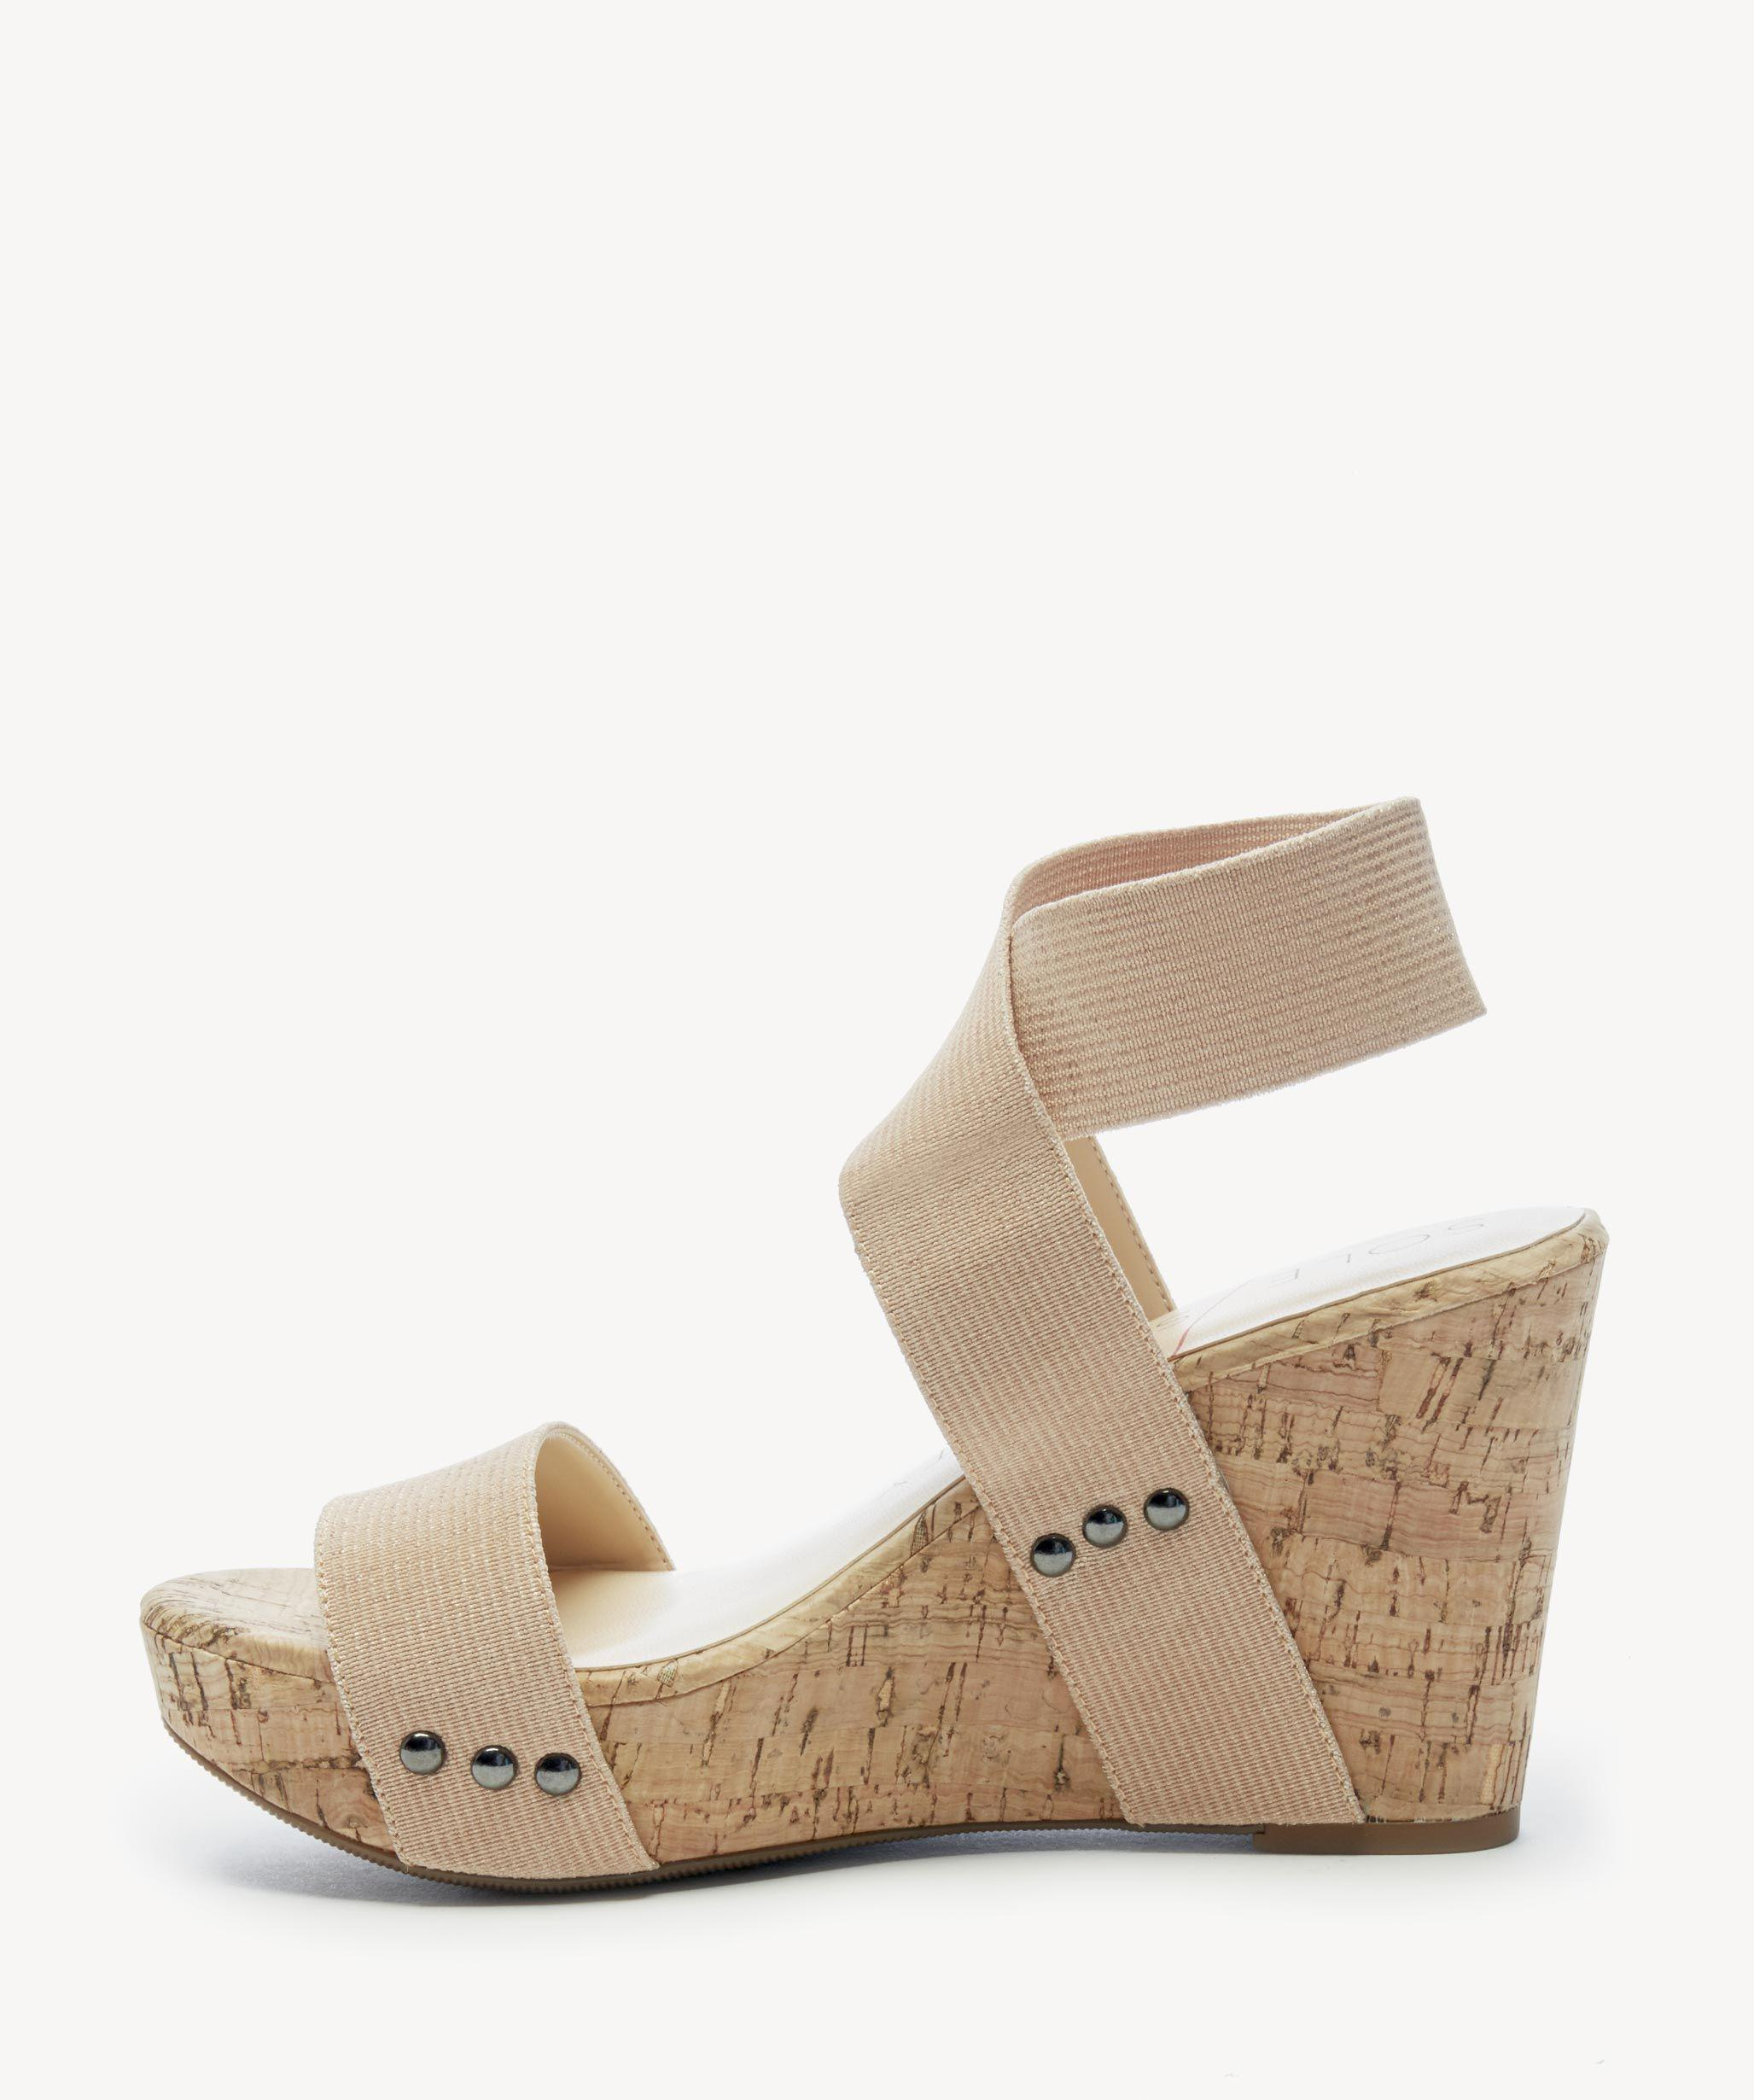 6eb65a5d3d Sole Society - Multicolor Analisa Cork Wedge Sandals - Lyst. View fullscreen